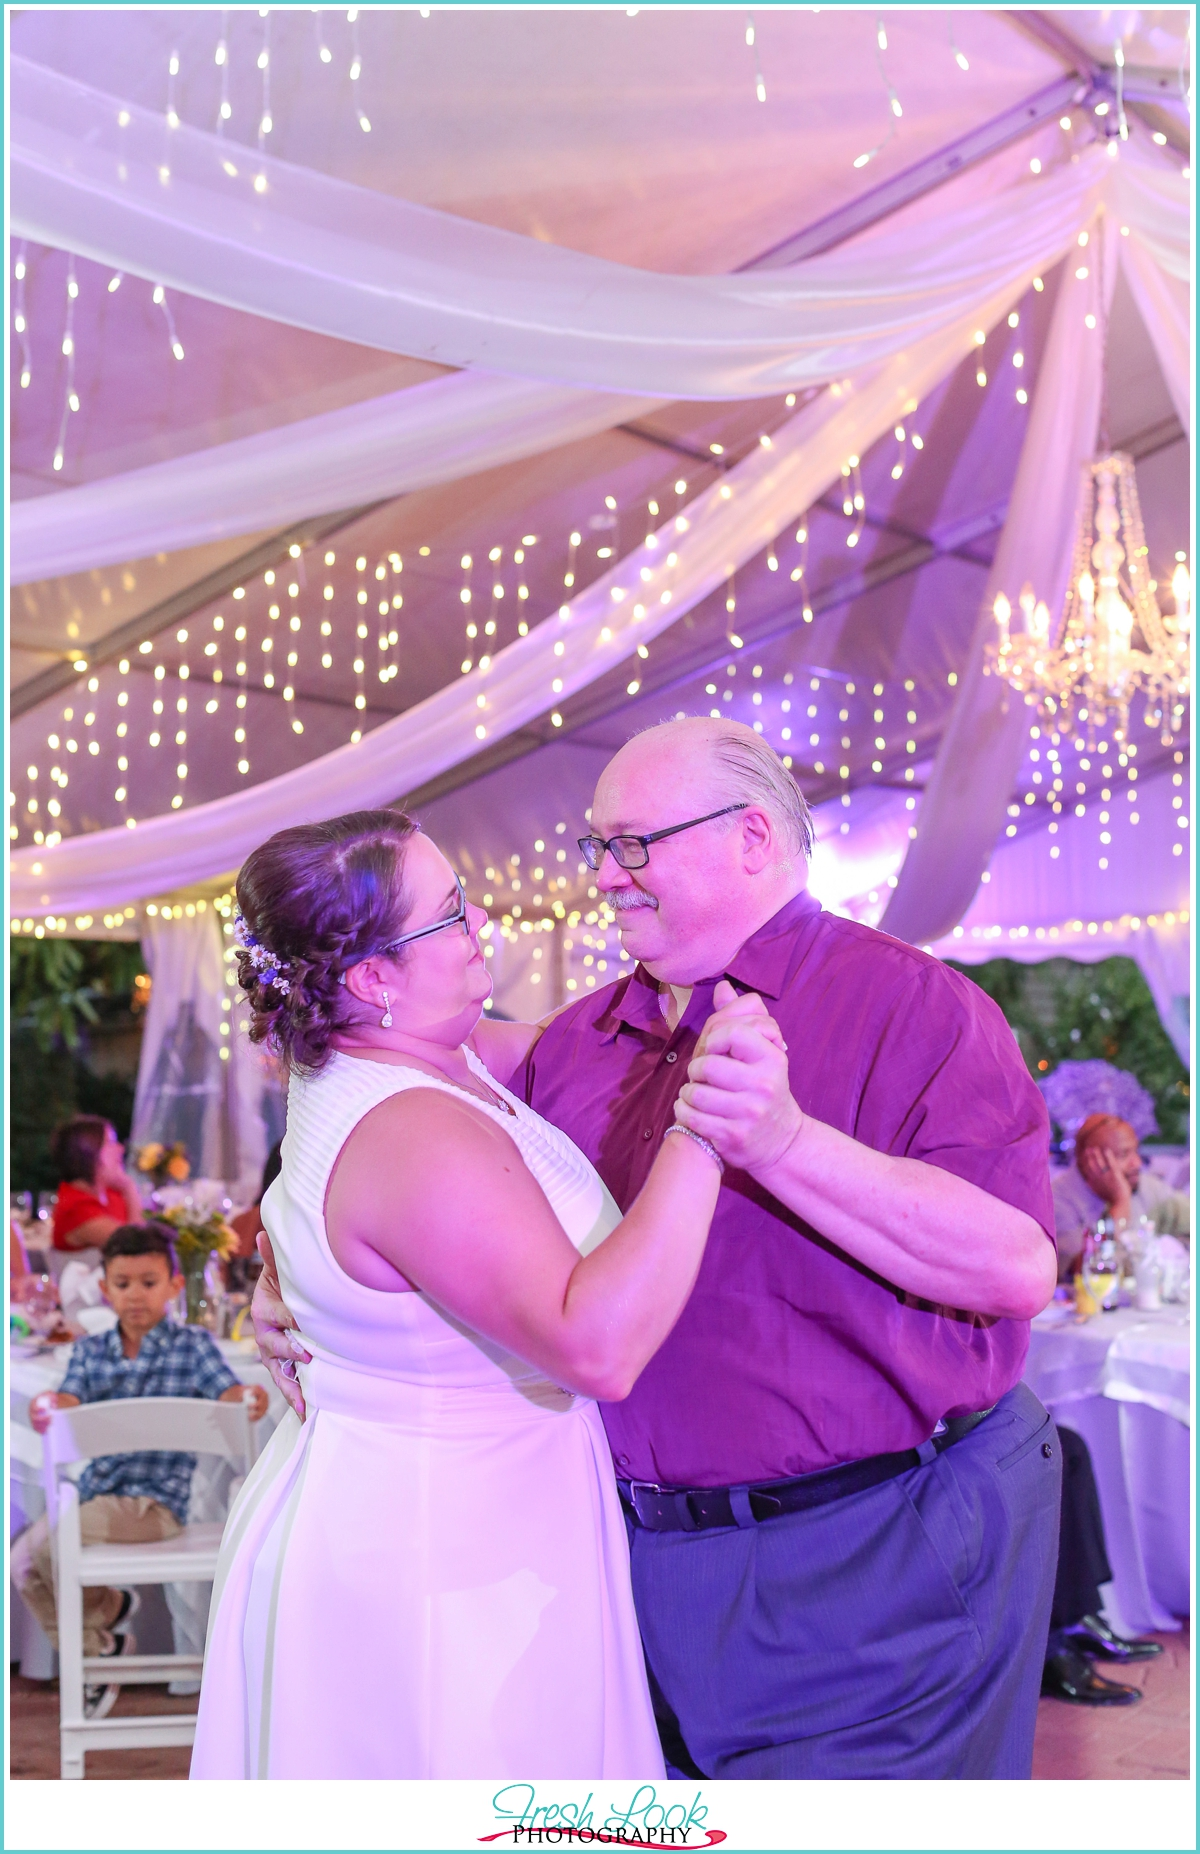 dancing with daddy at the wedding